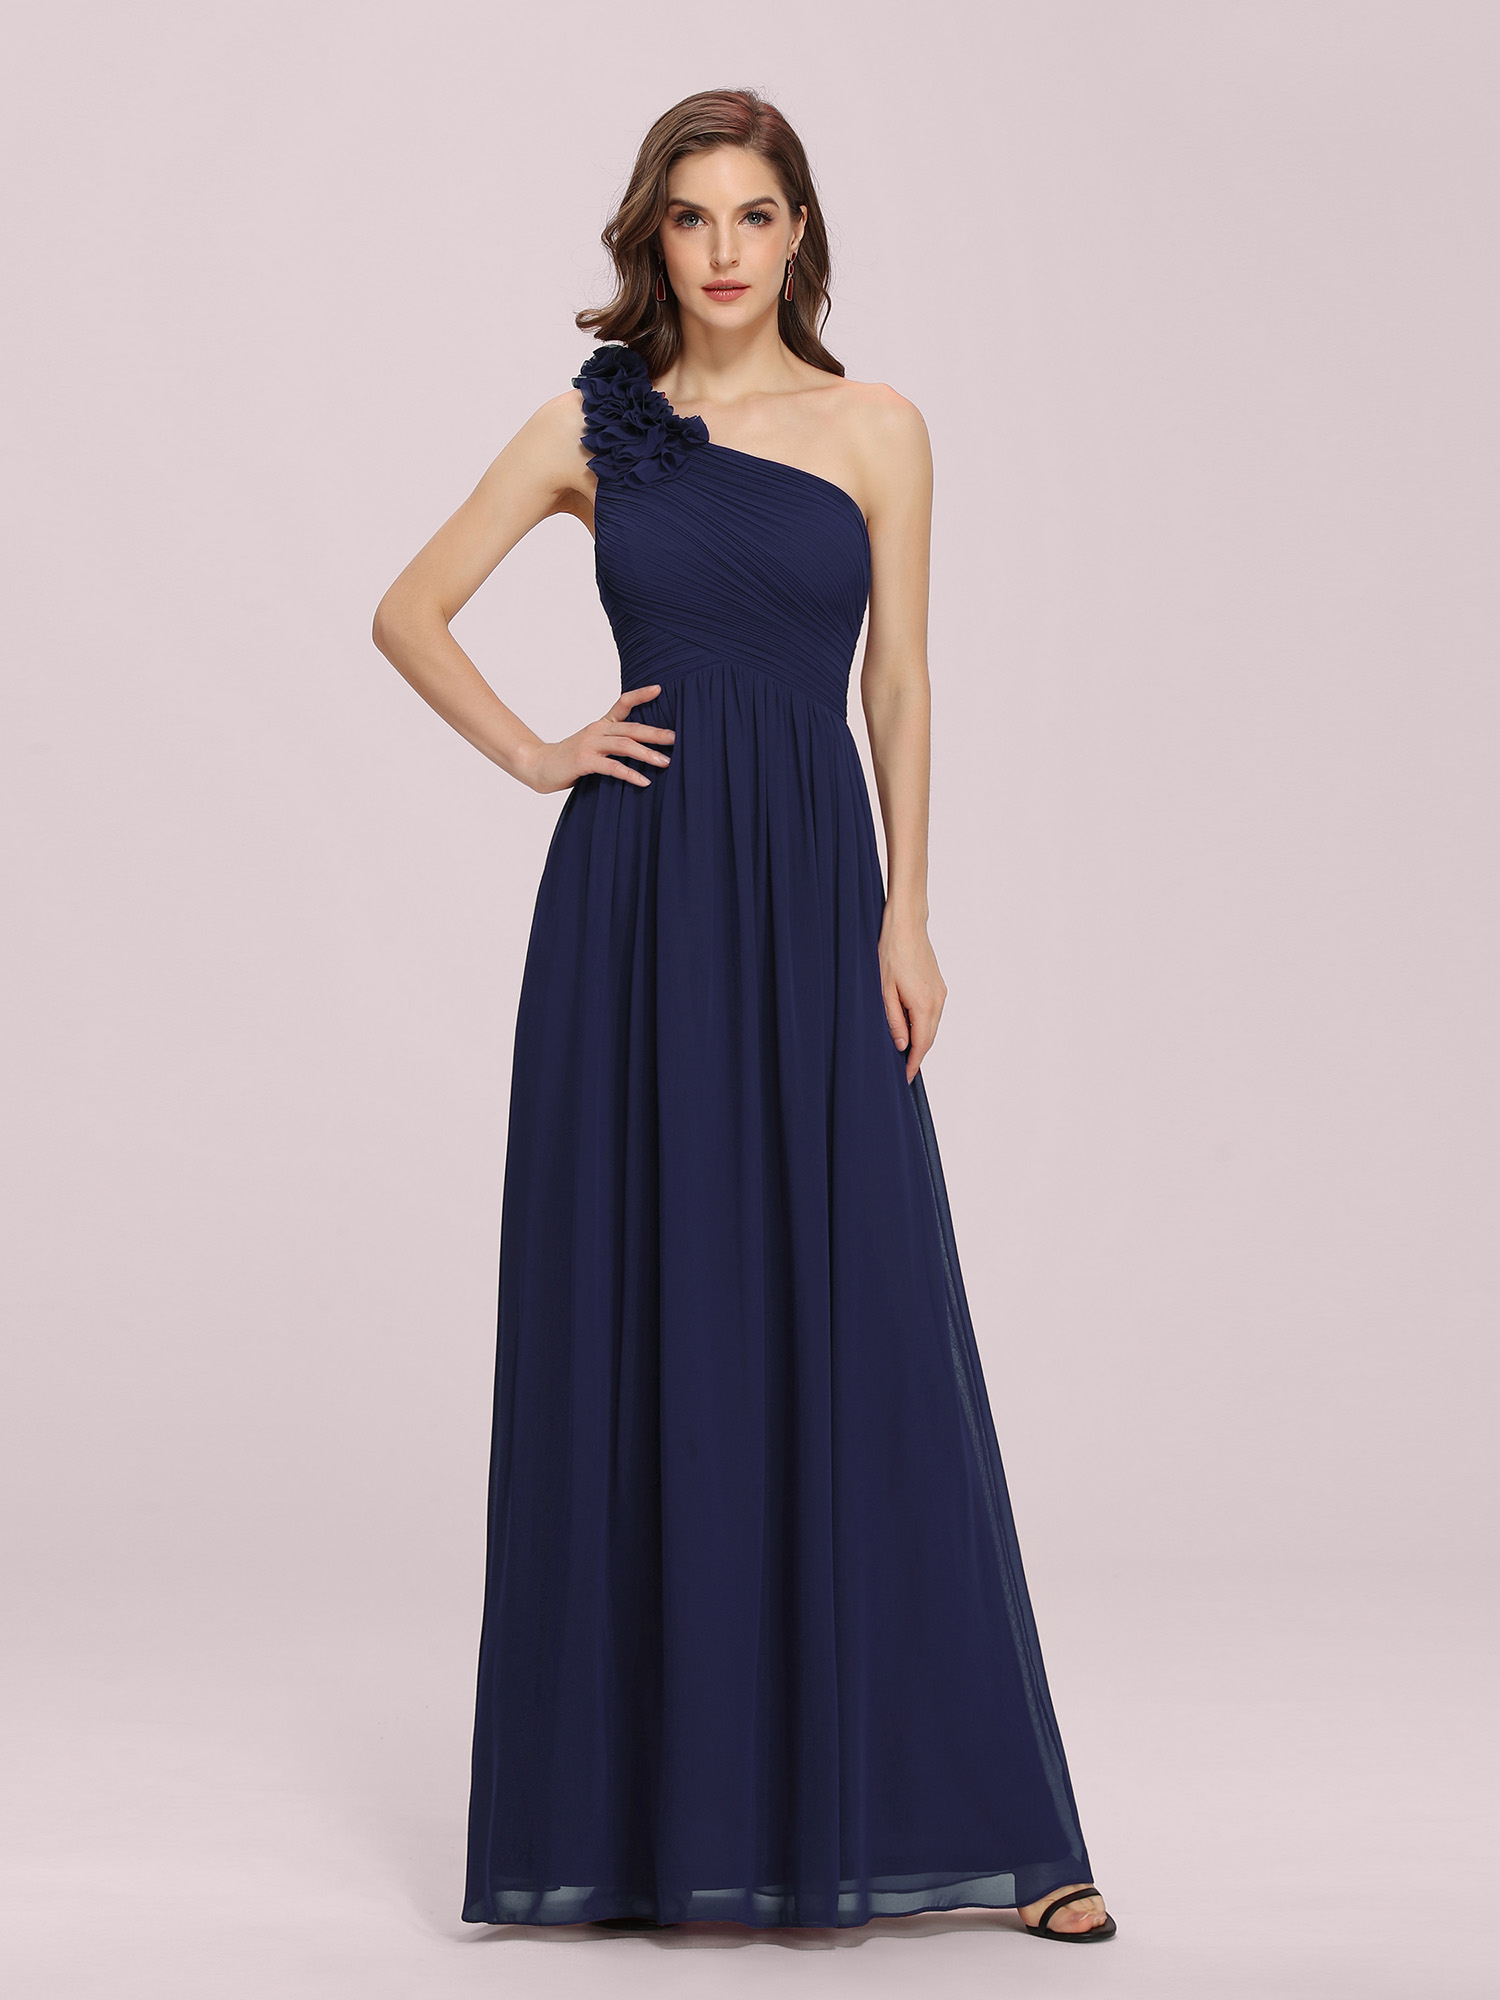 Ever-Pretty Navy Blue Dress One Shoulder Prom Party Ball Gown 08237 ...